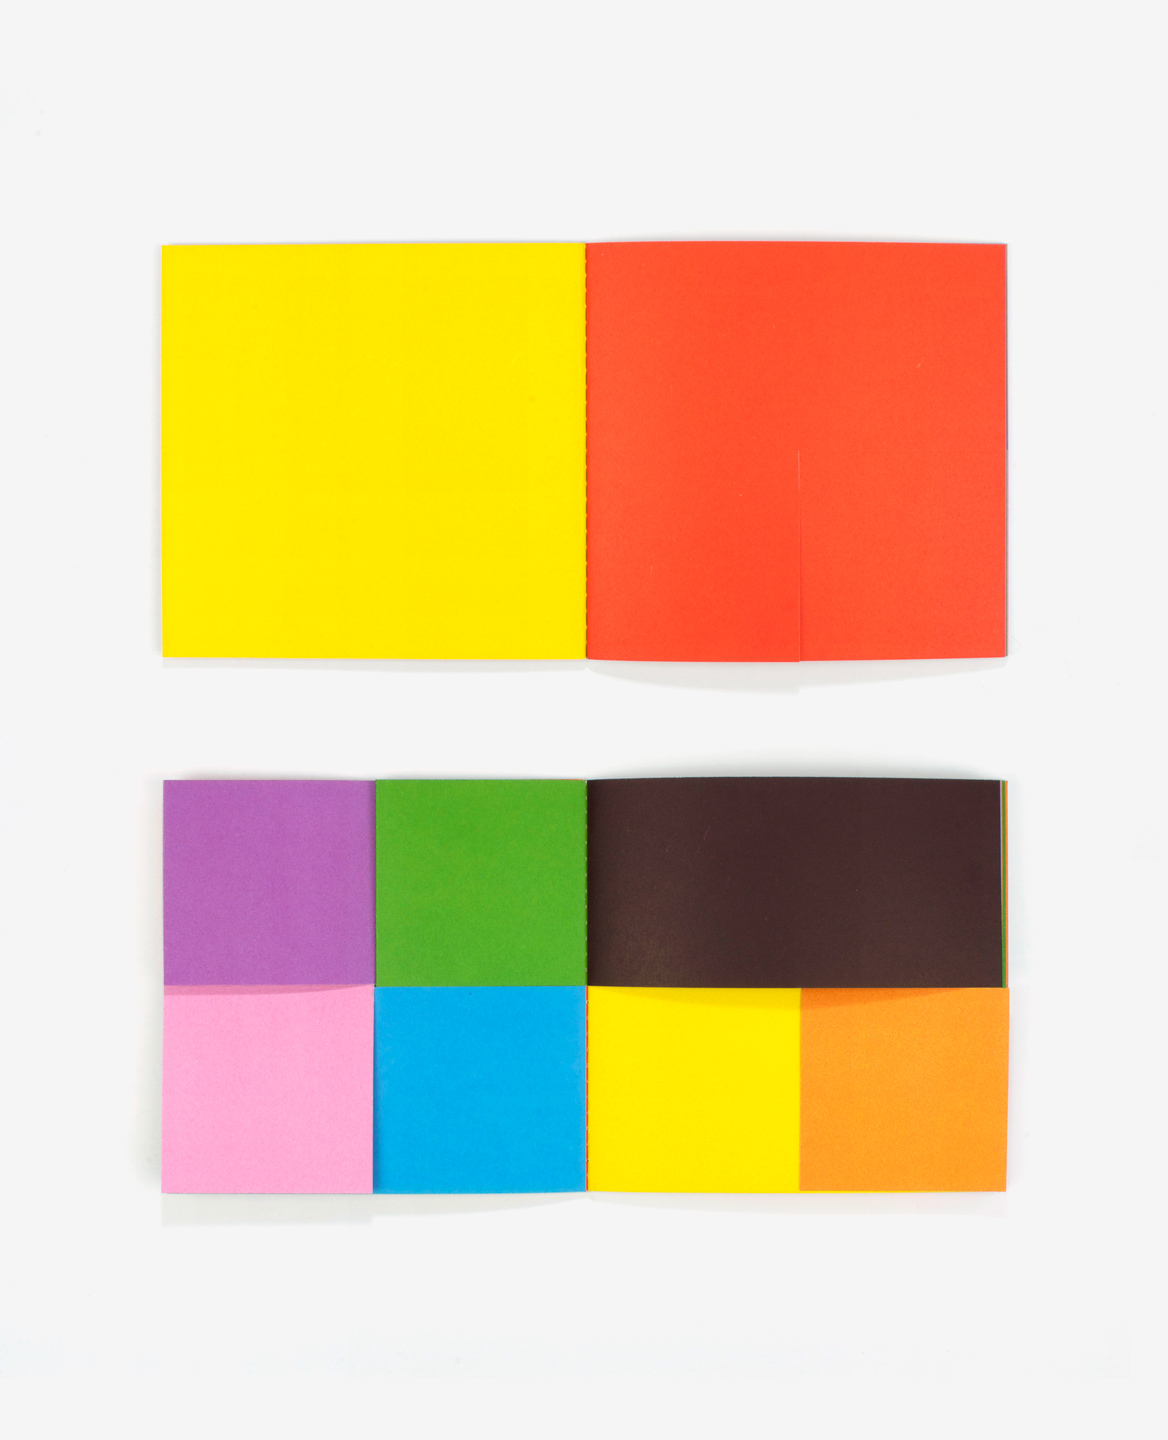 Multi colored pages of the book Colors by Antonio Ladrillo published by Éditions du livre